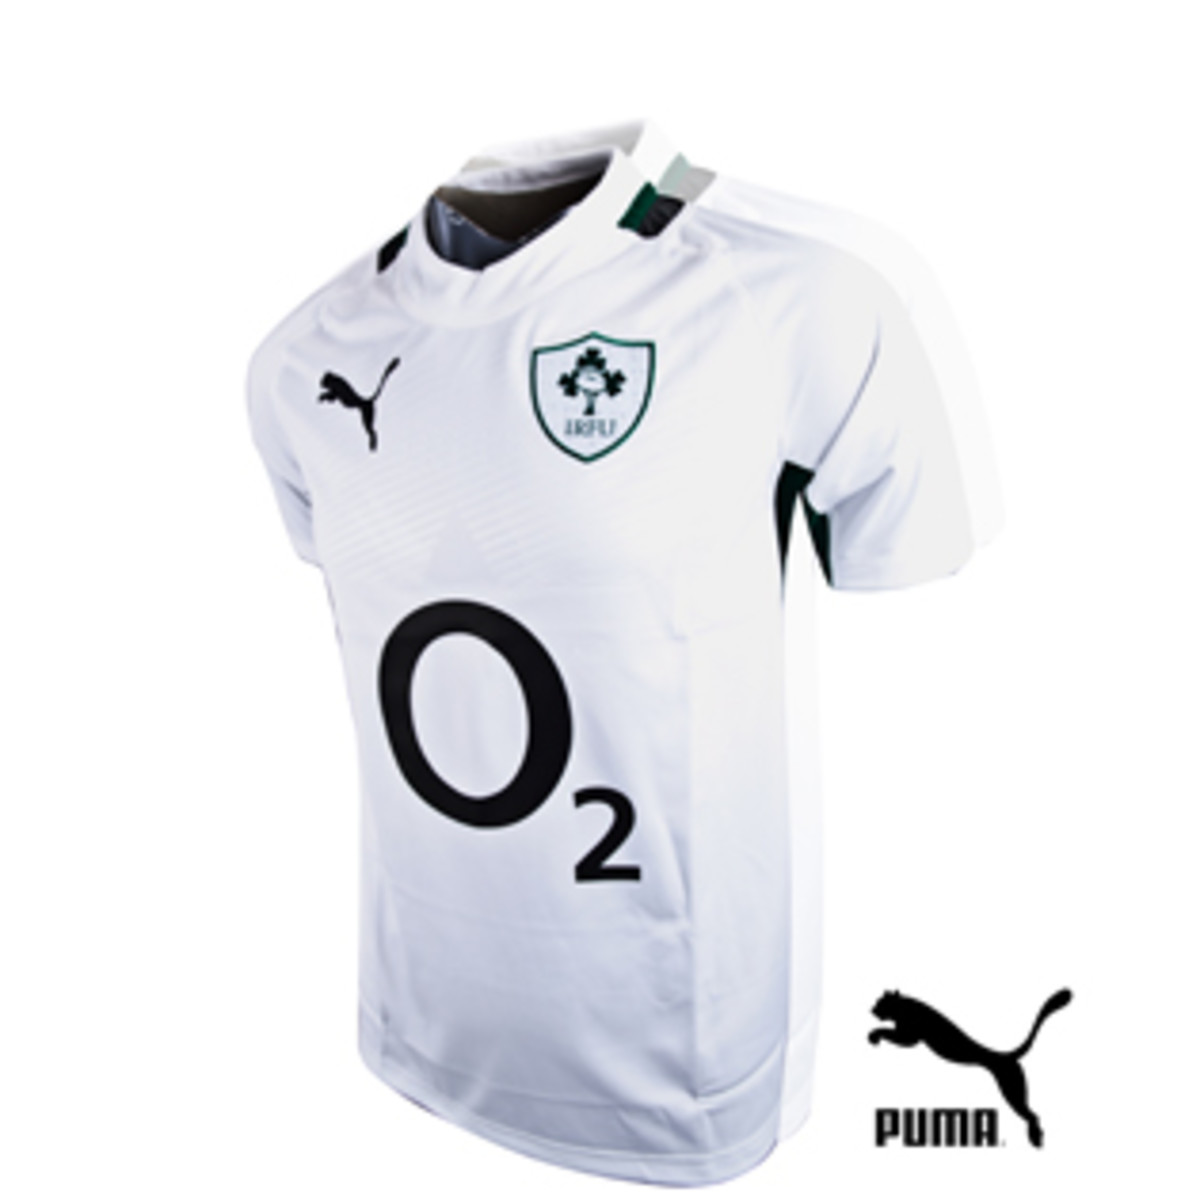 Ireland's away kit for 2012